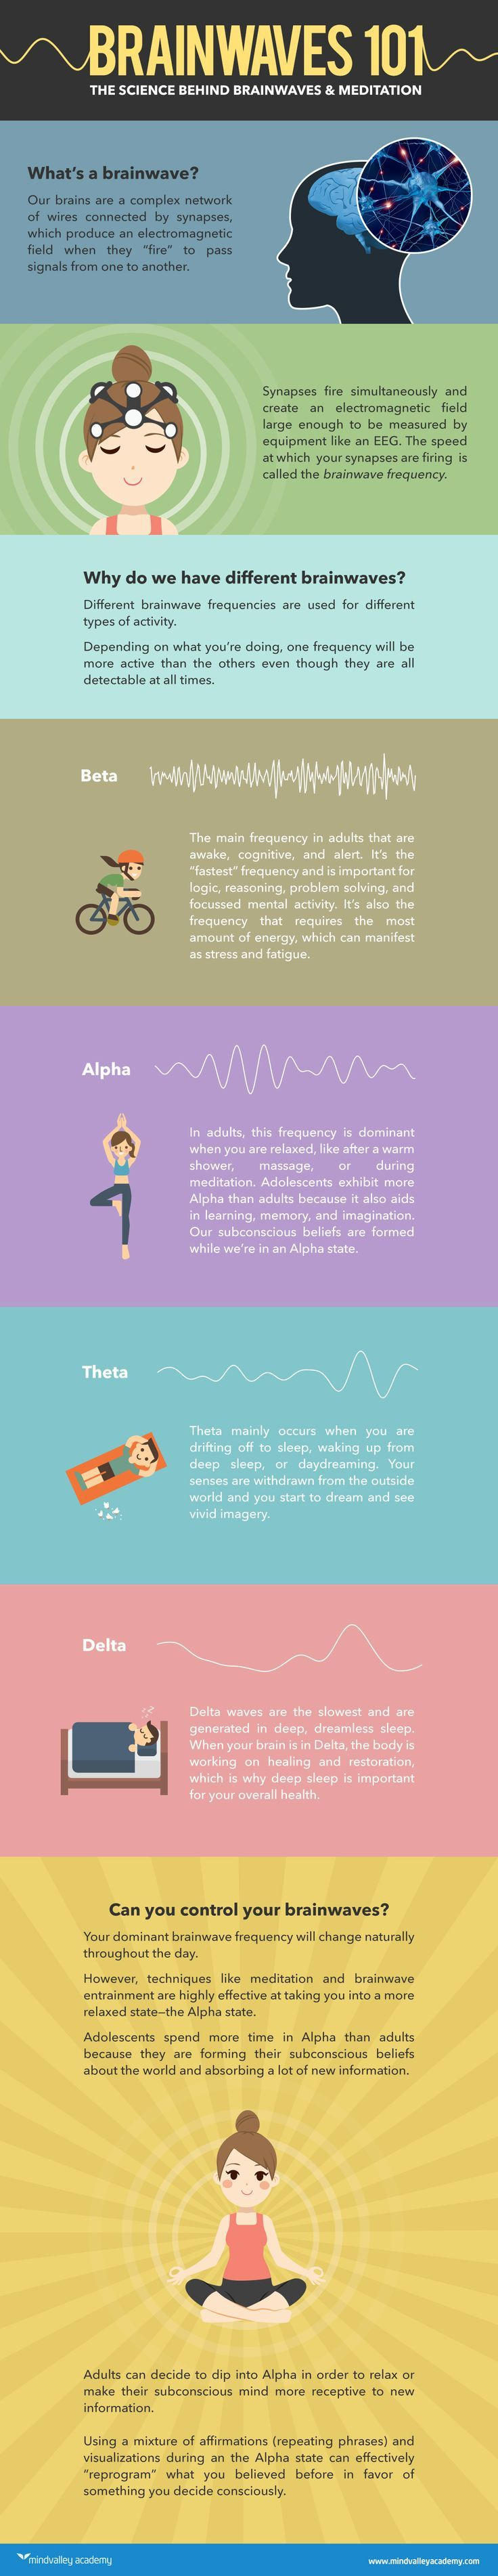 The Science Behind Brainwaves & Meditation [Infographic]   Mindvalley Academy